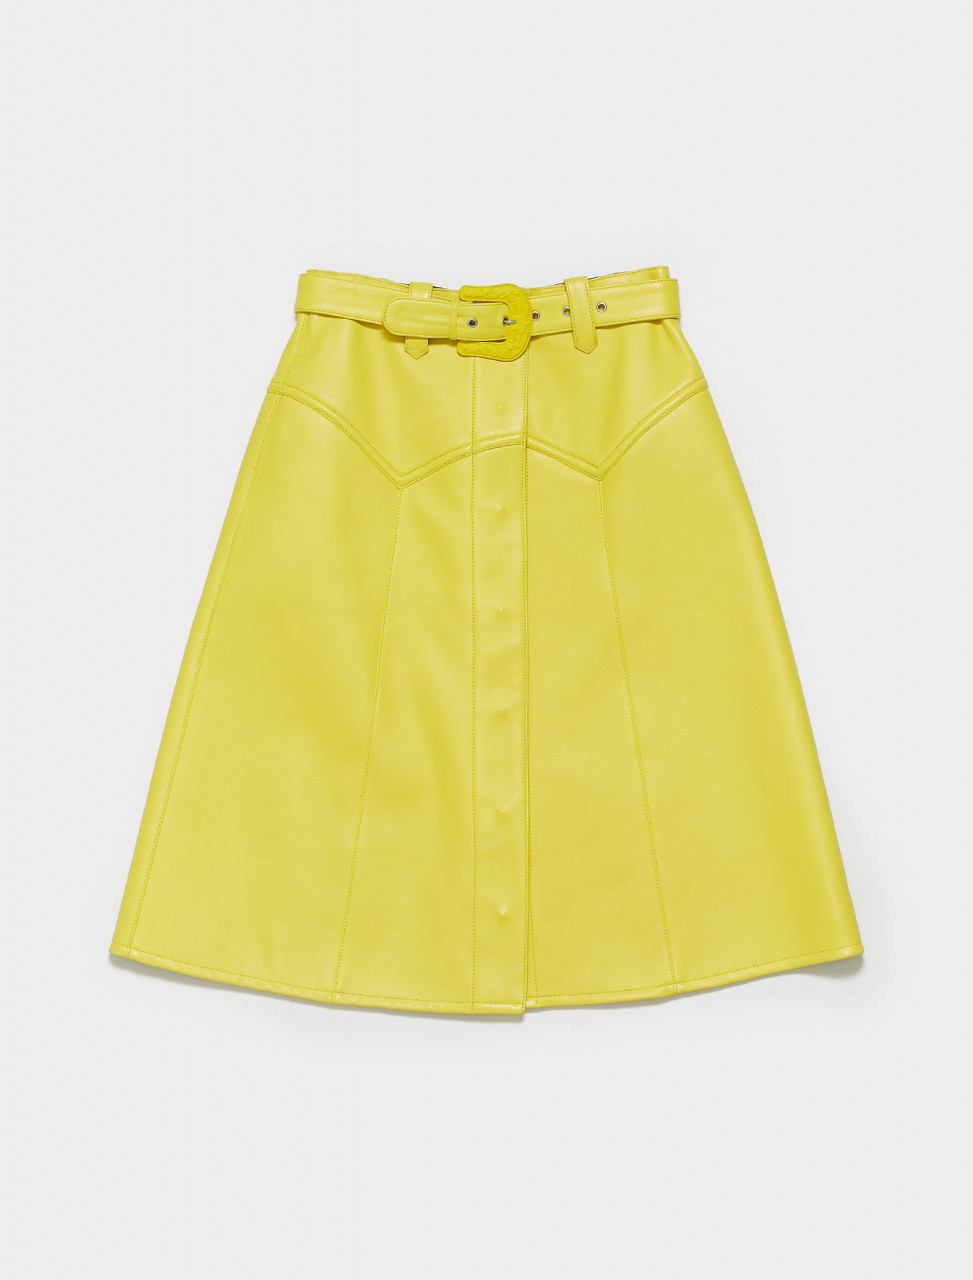 S29MA0375-SY1337-173 MAISON MARGIELA SKIRT IN YELLOW